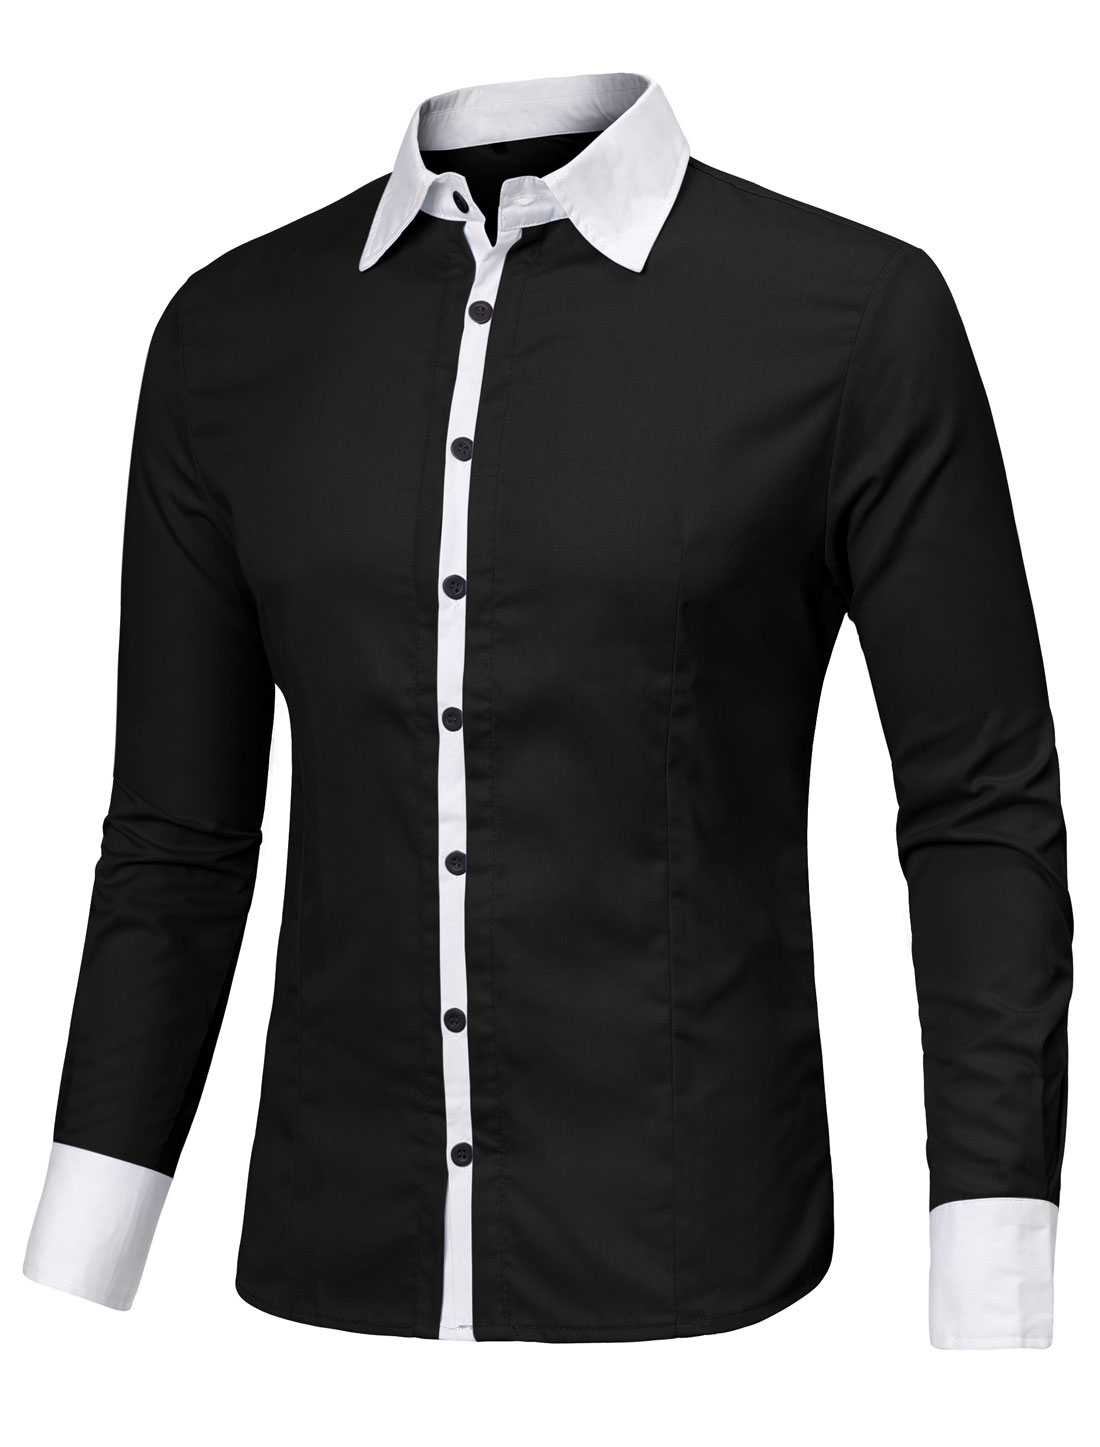 Men Contrast Color Long Sleeves Slim Fit Button Up Shirt Black L